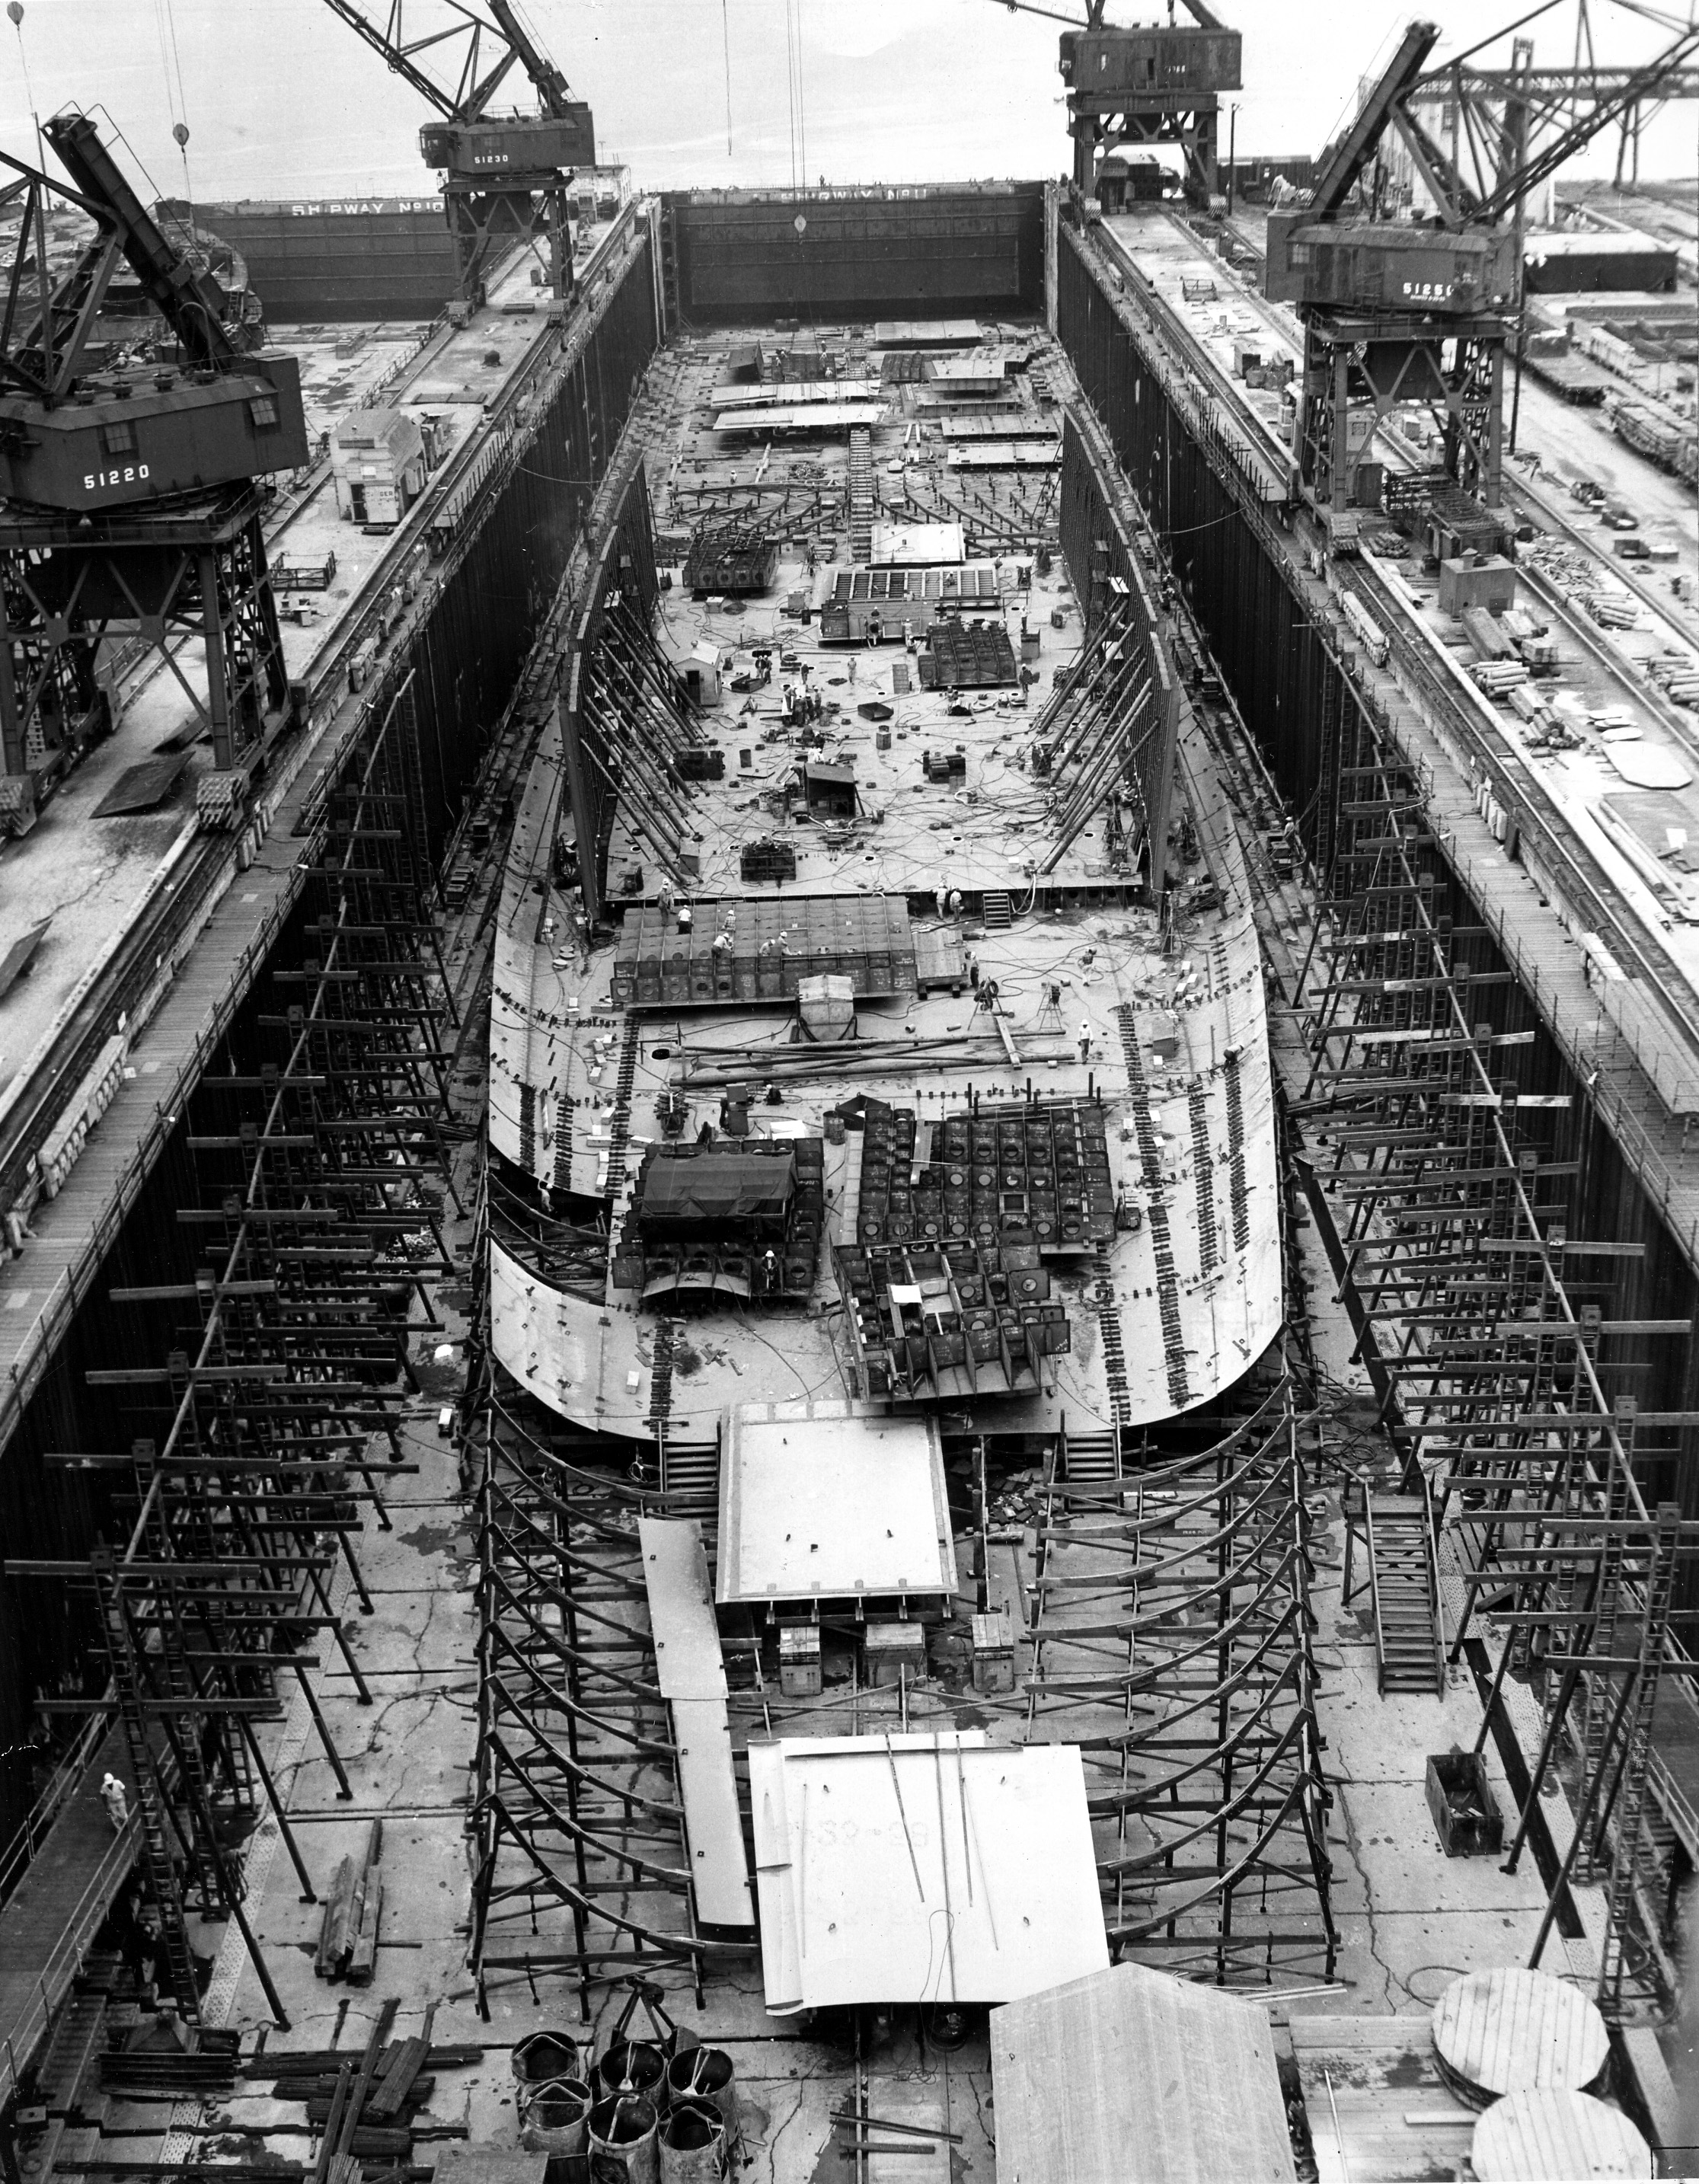 The Enterprise under construction in 1958.